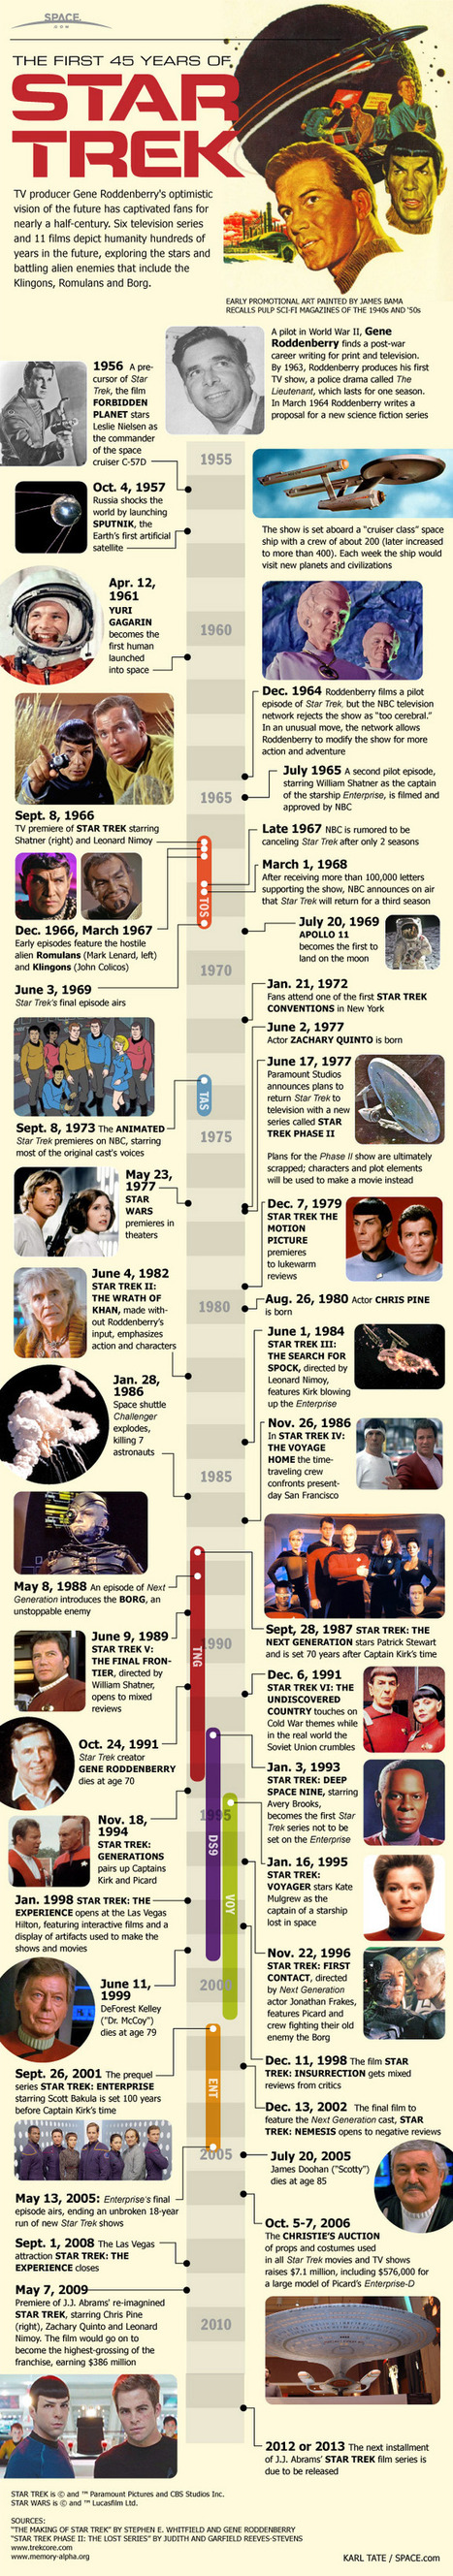 Star Trek Over The Last 45 Years (Infographic) | All Geeks | Scoop.it